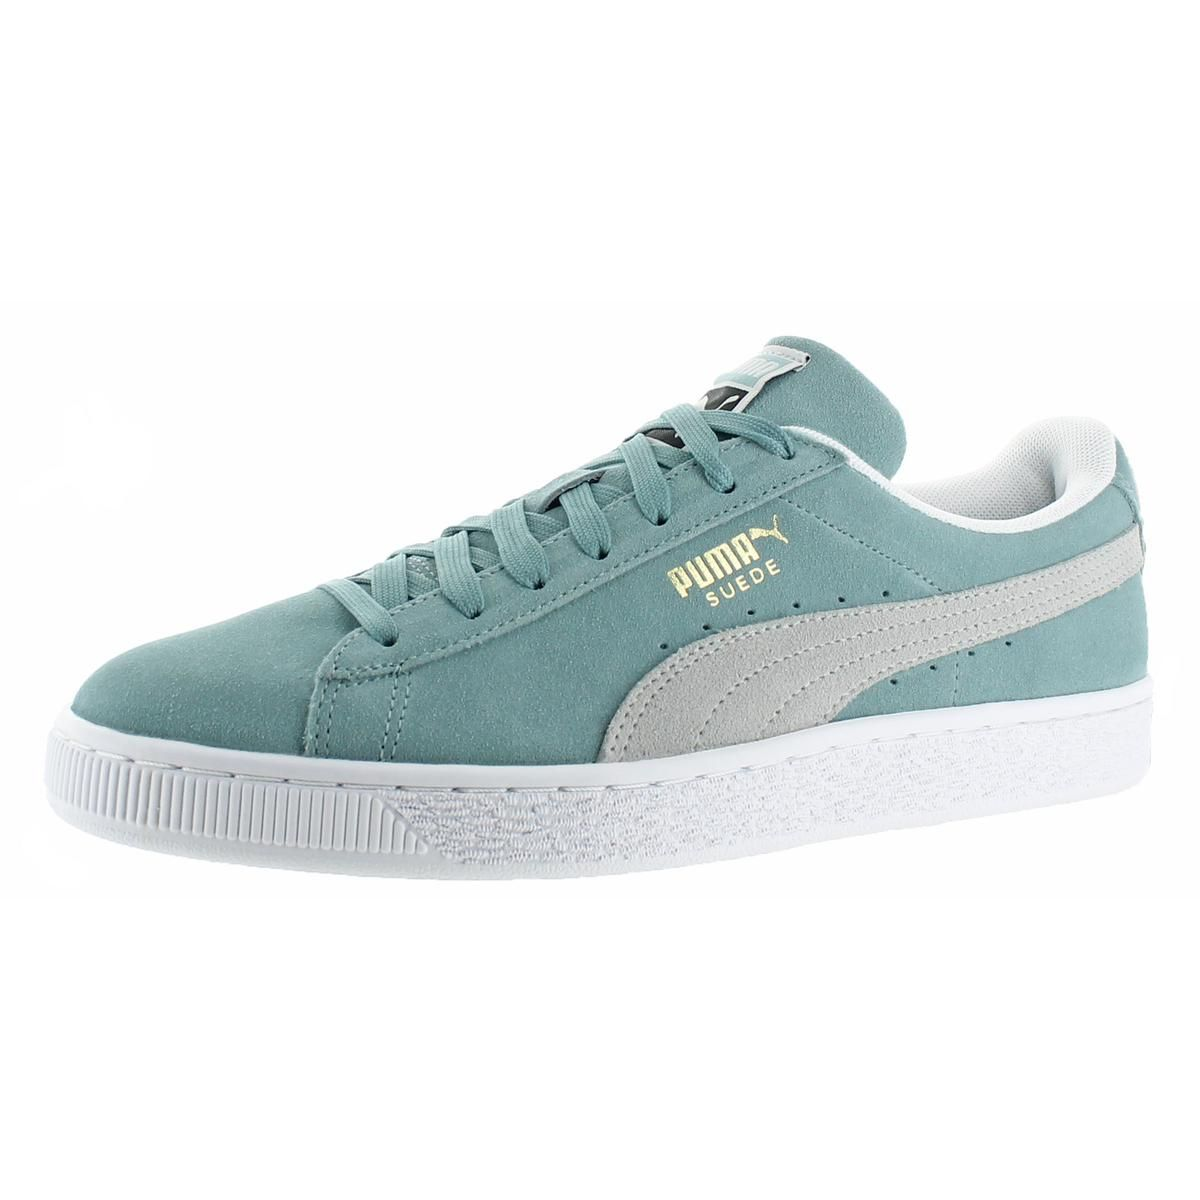 acd27c000cf Puma Suede Classic Men s Fashion Sneakers Shoes Seafoam Green Pale